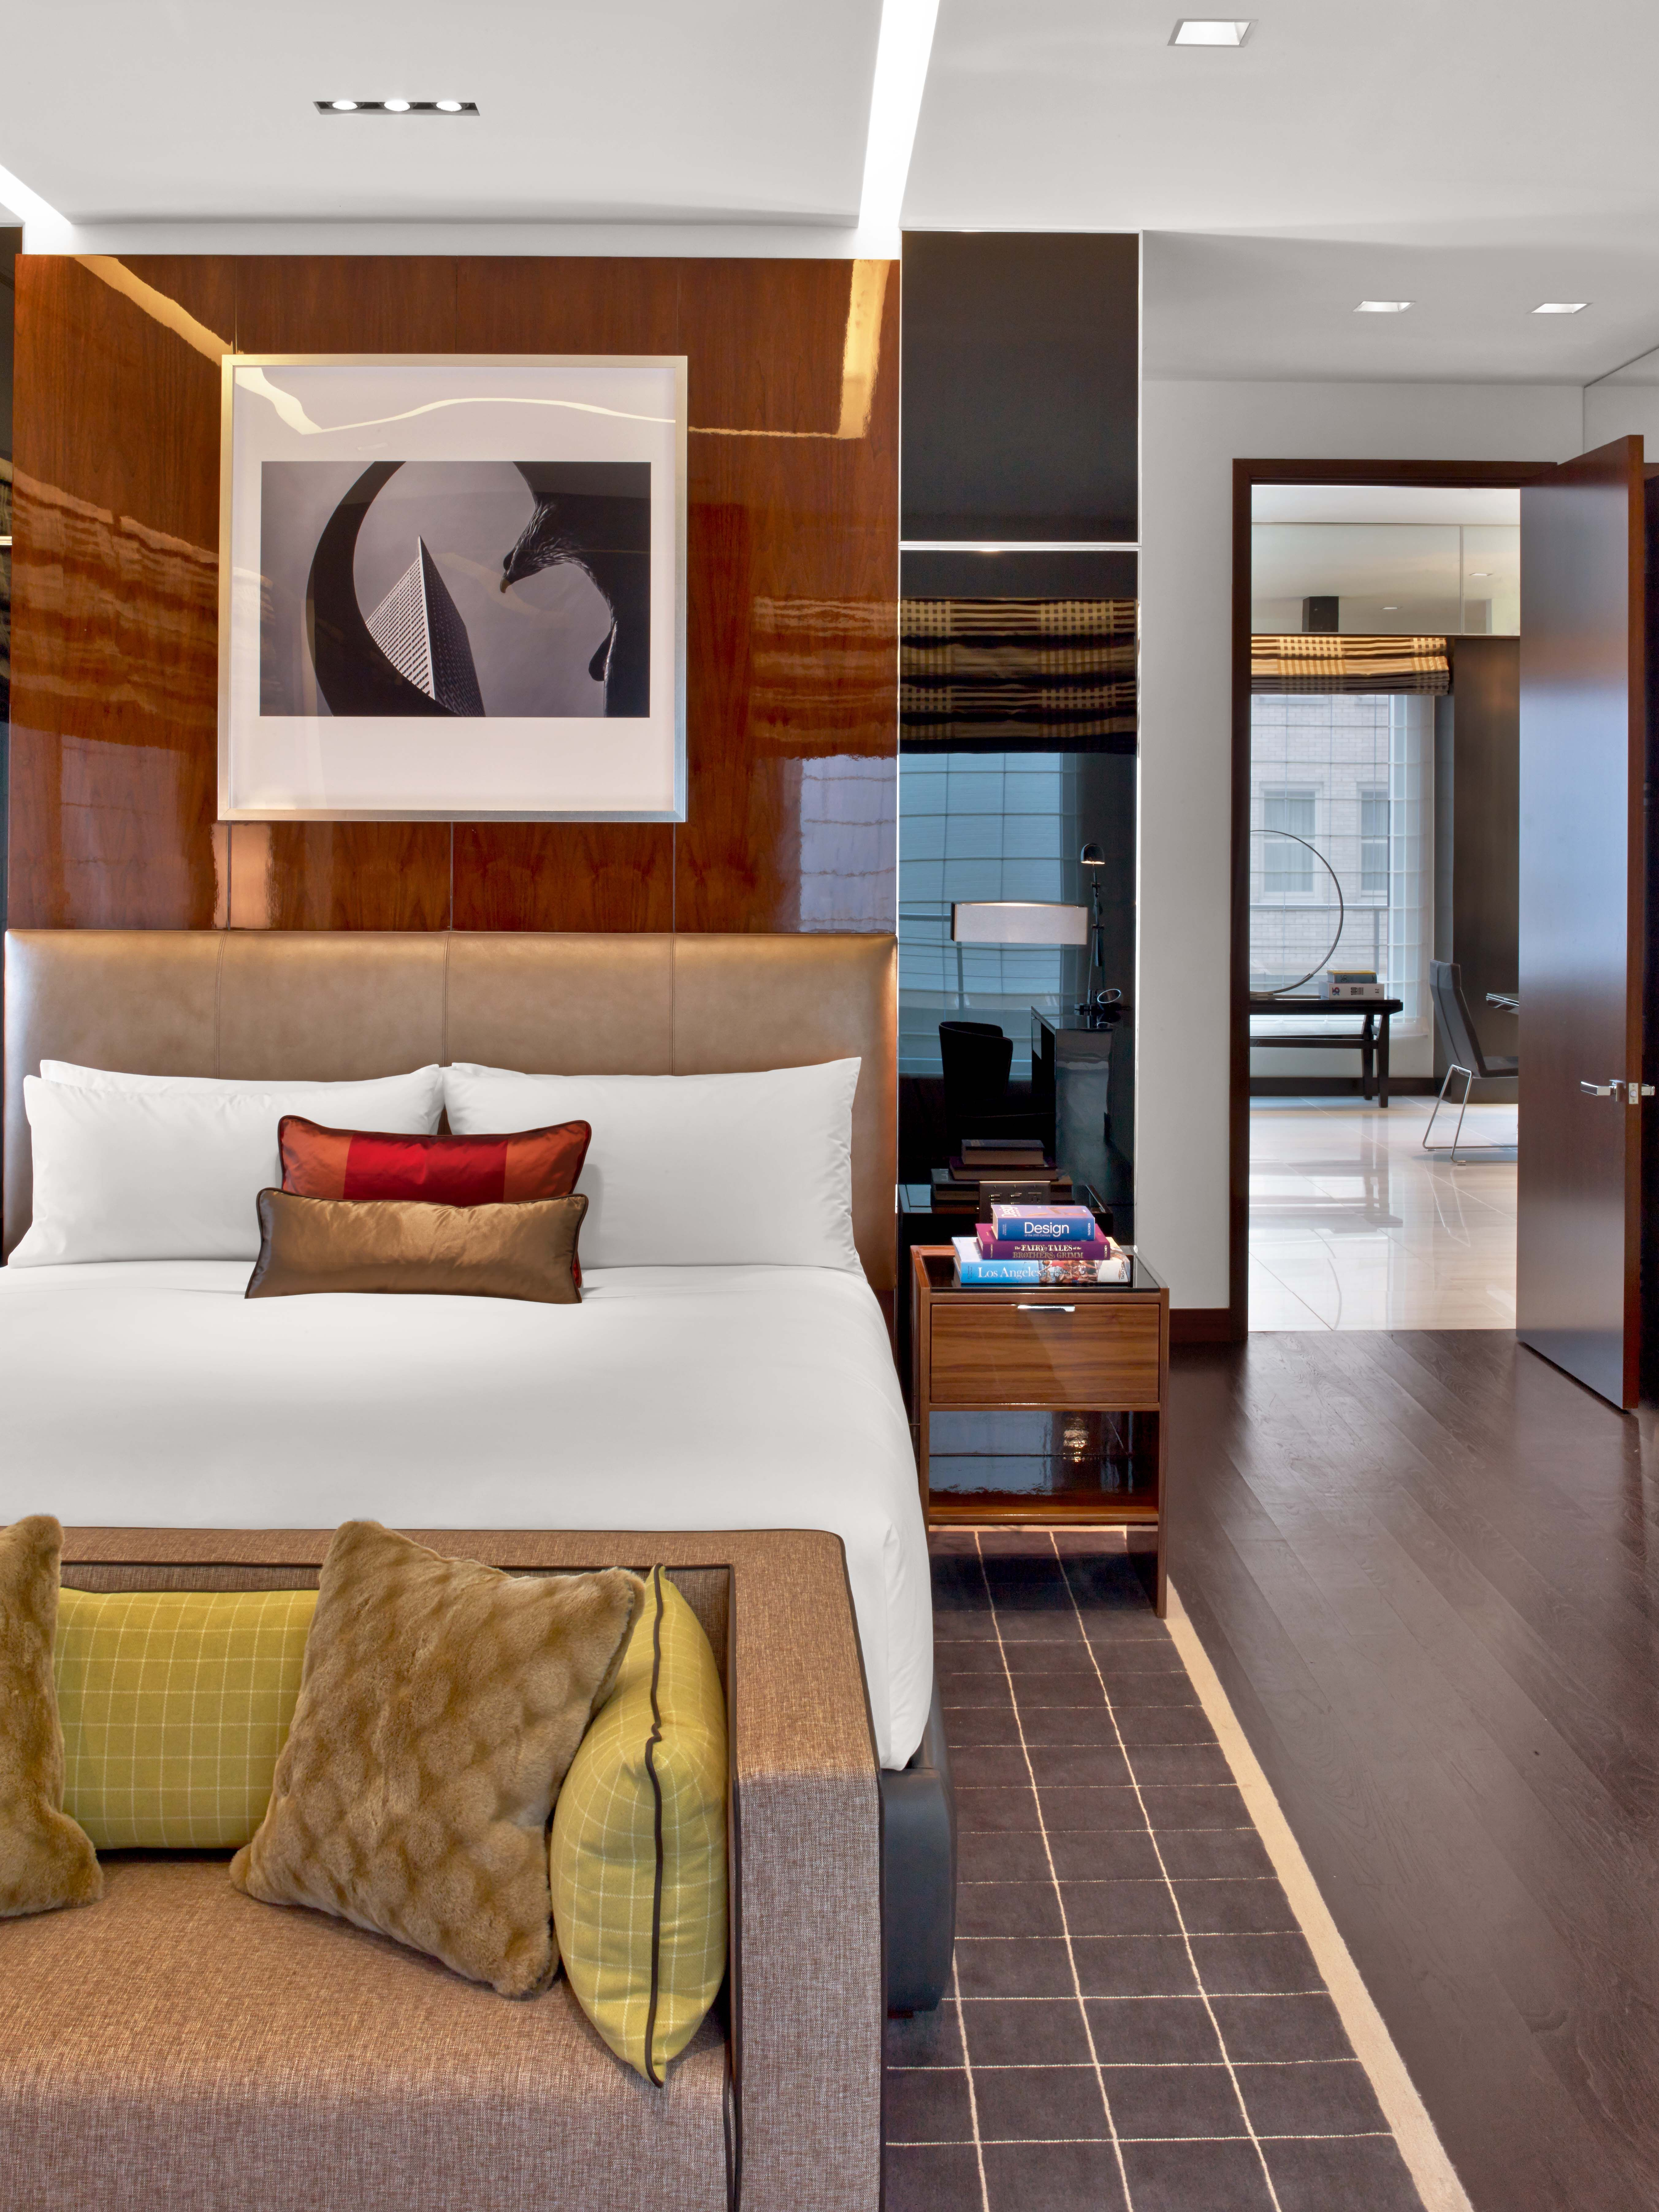 Penthouse Master Bedroom at The Joule